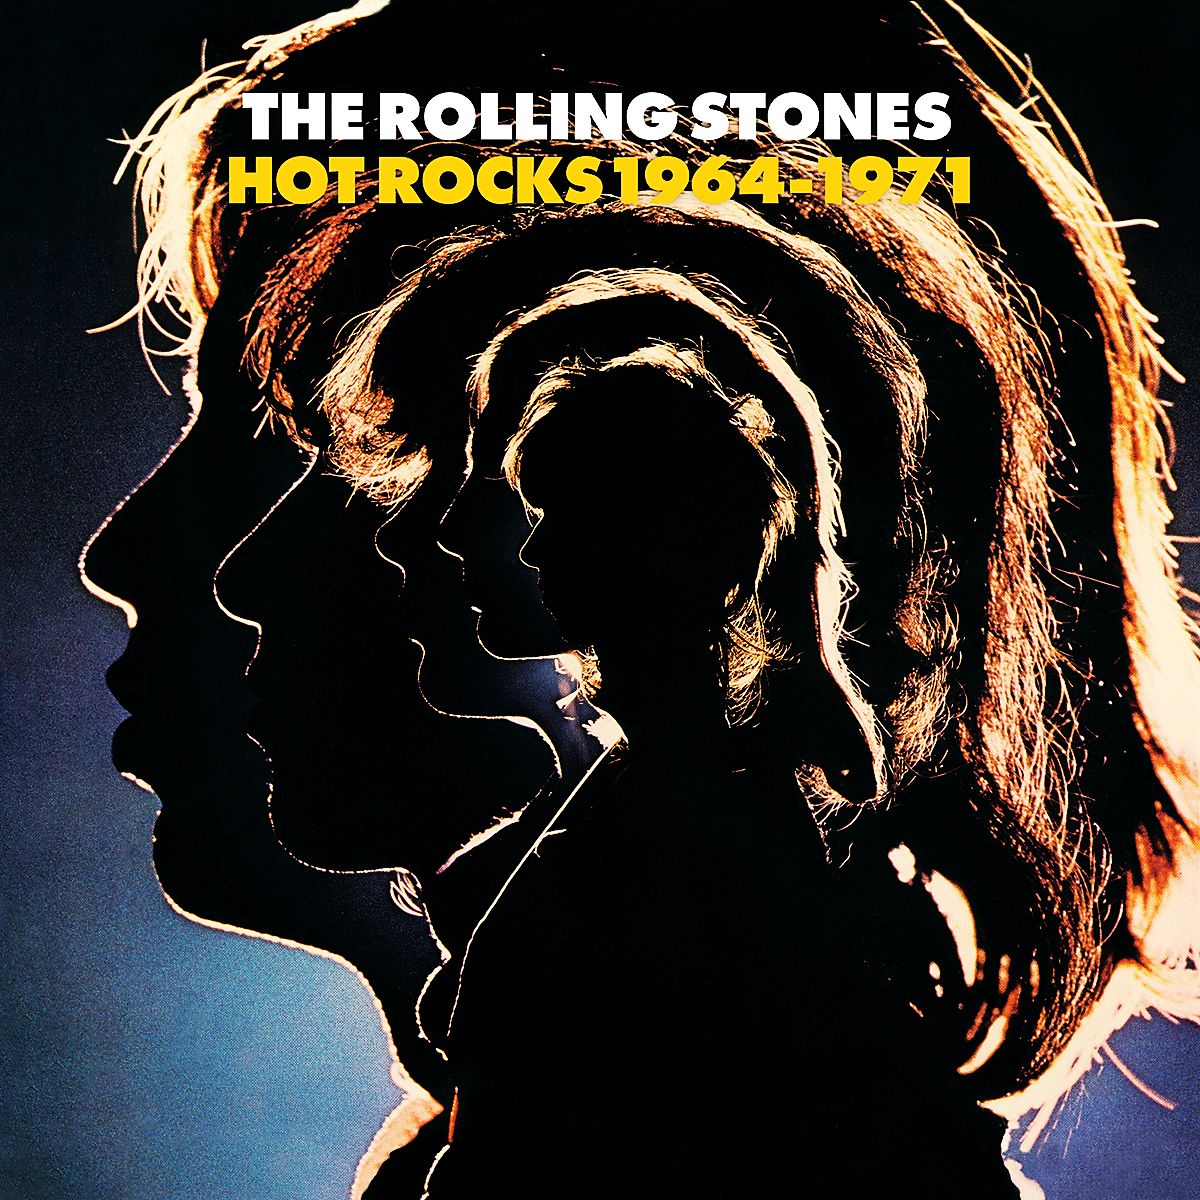 The Rolling Stones - Hot Rocks 1964-1971 album cover